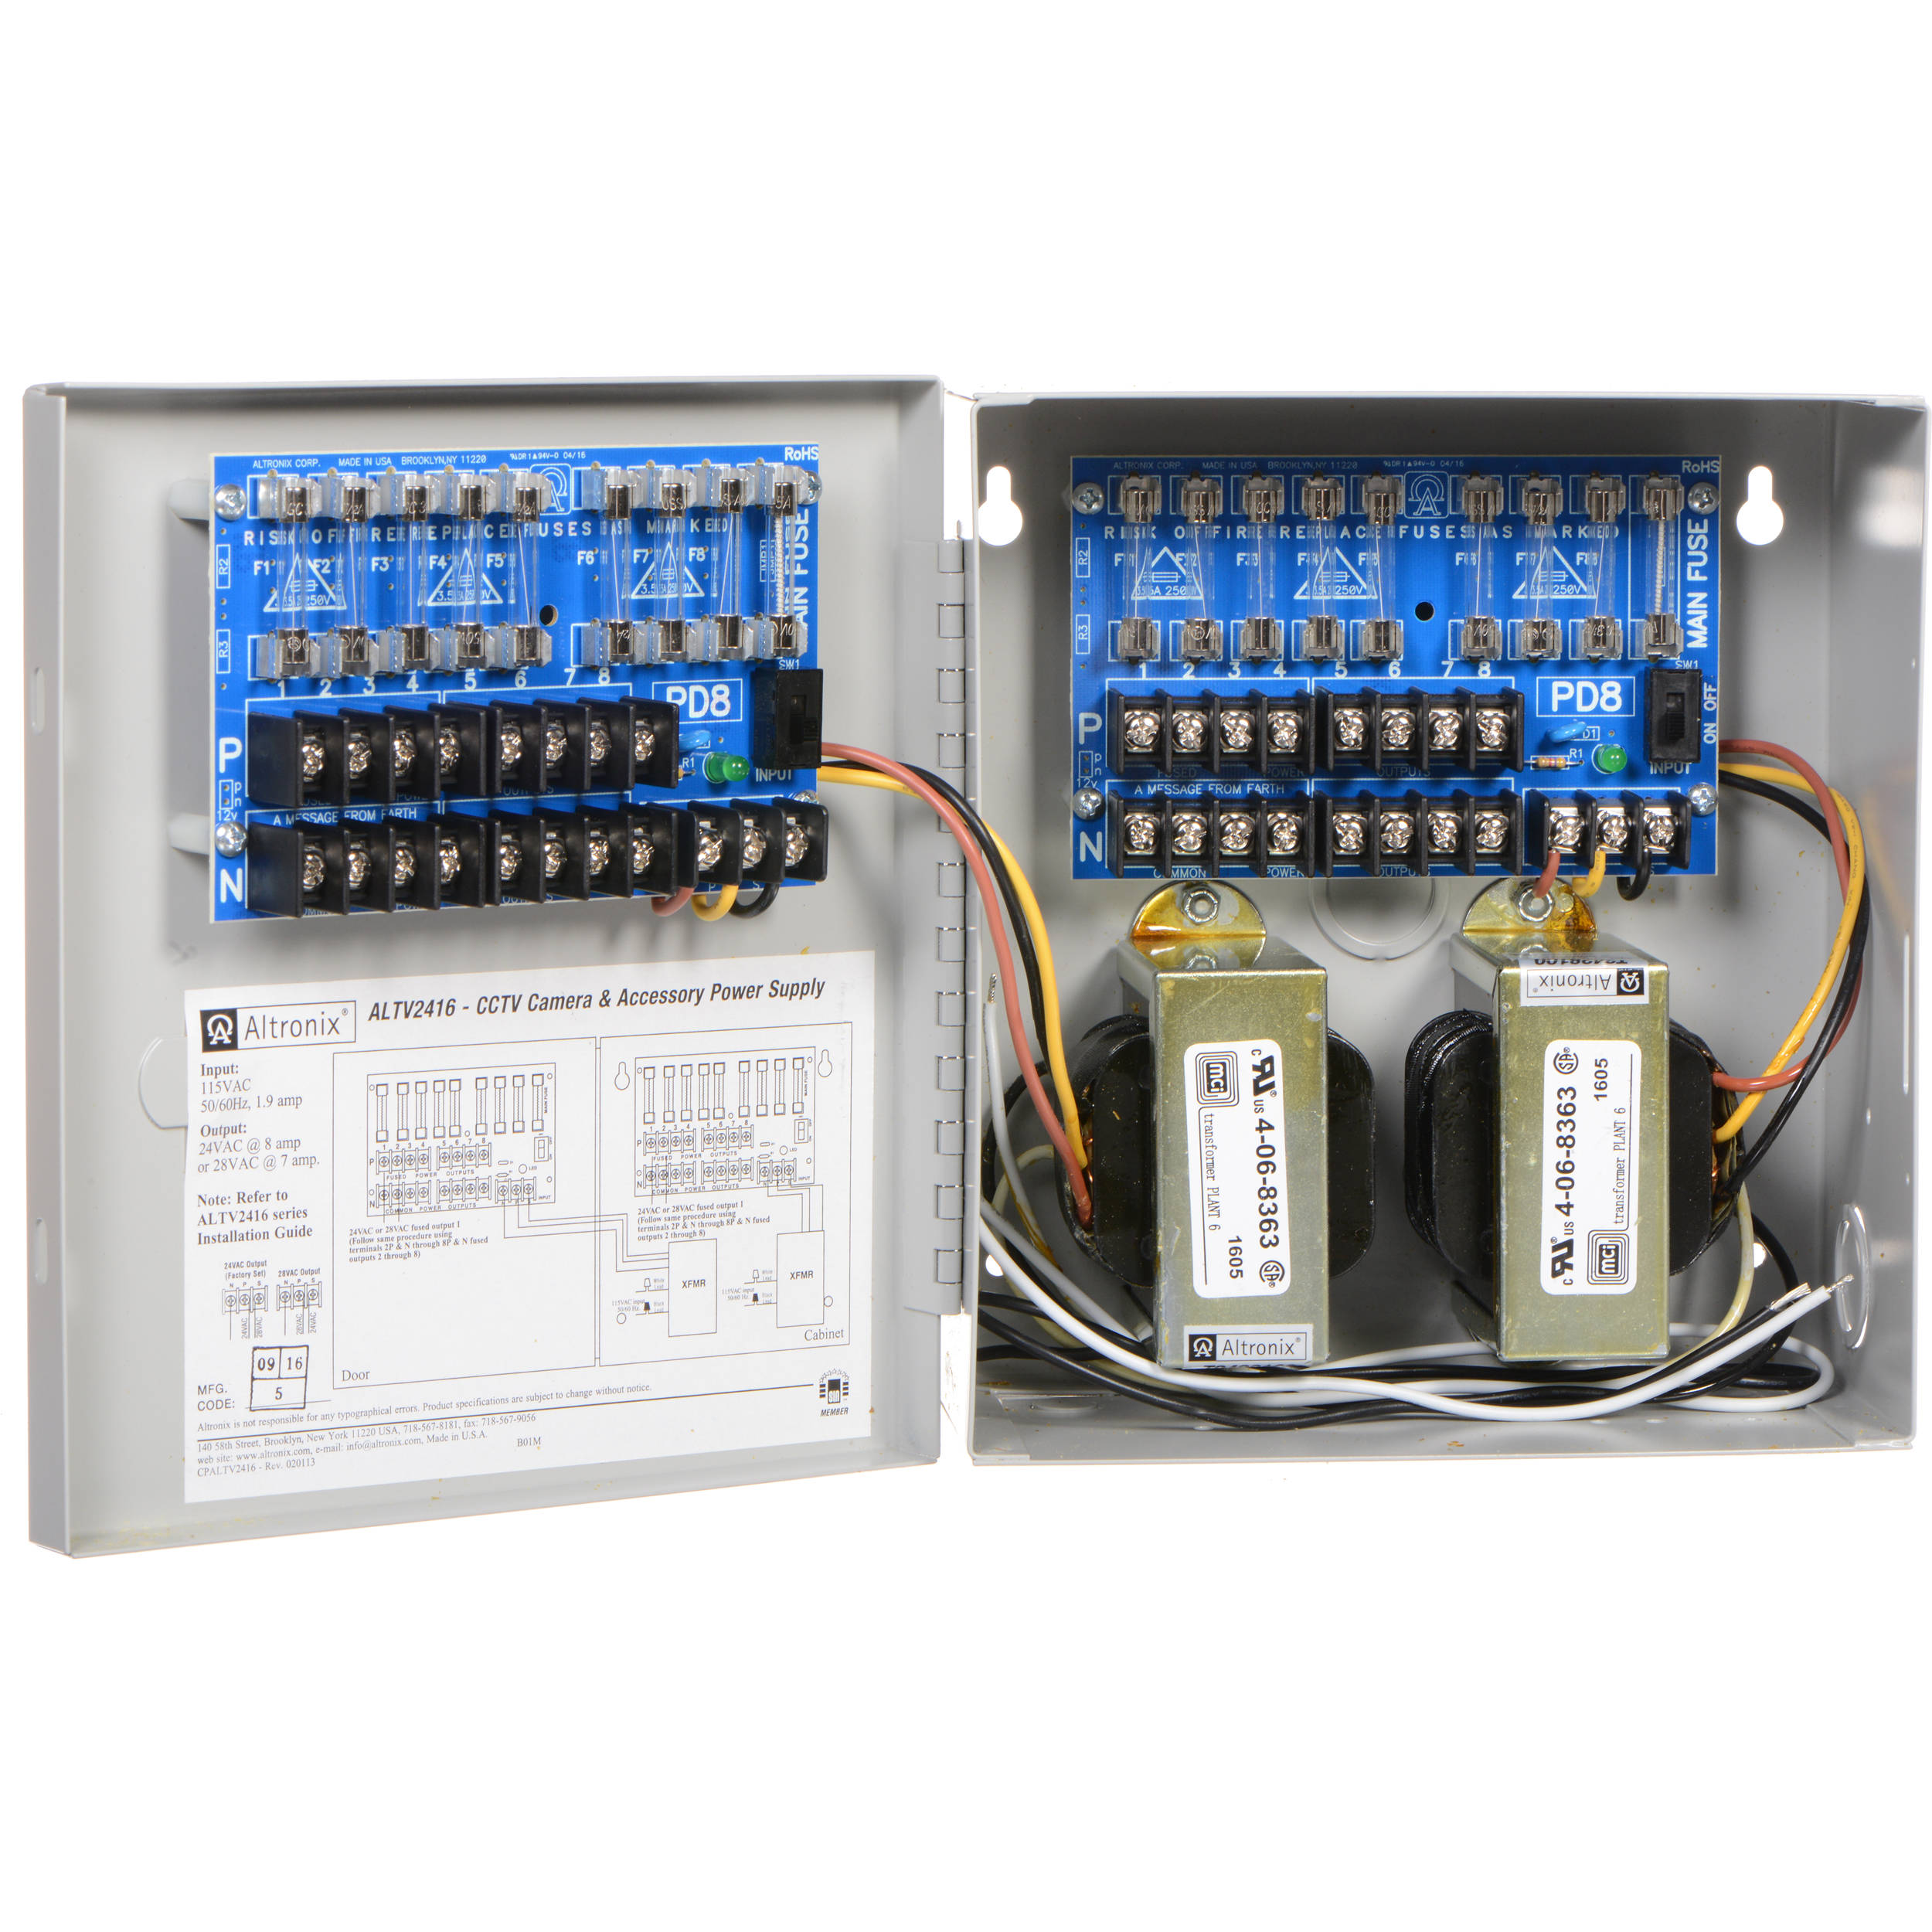 Altronix 16 Output Power Supply Altv2416 Bh Photo Video Tv And Component Wiring Guide 24 Vac 8a 28 7a